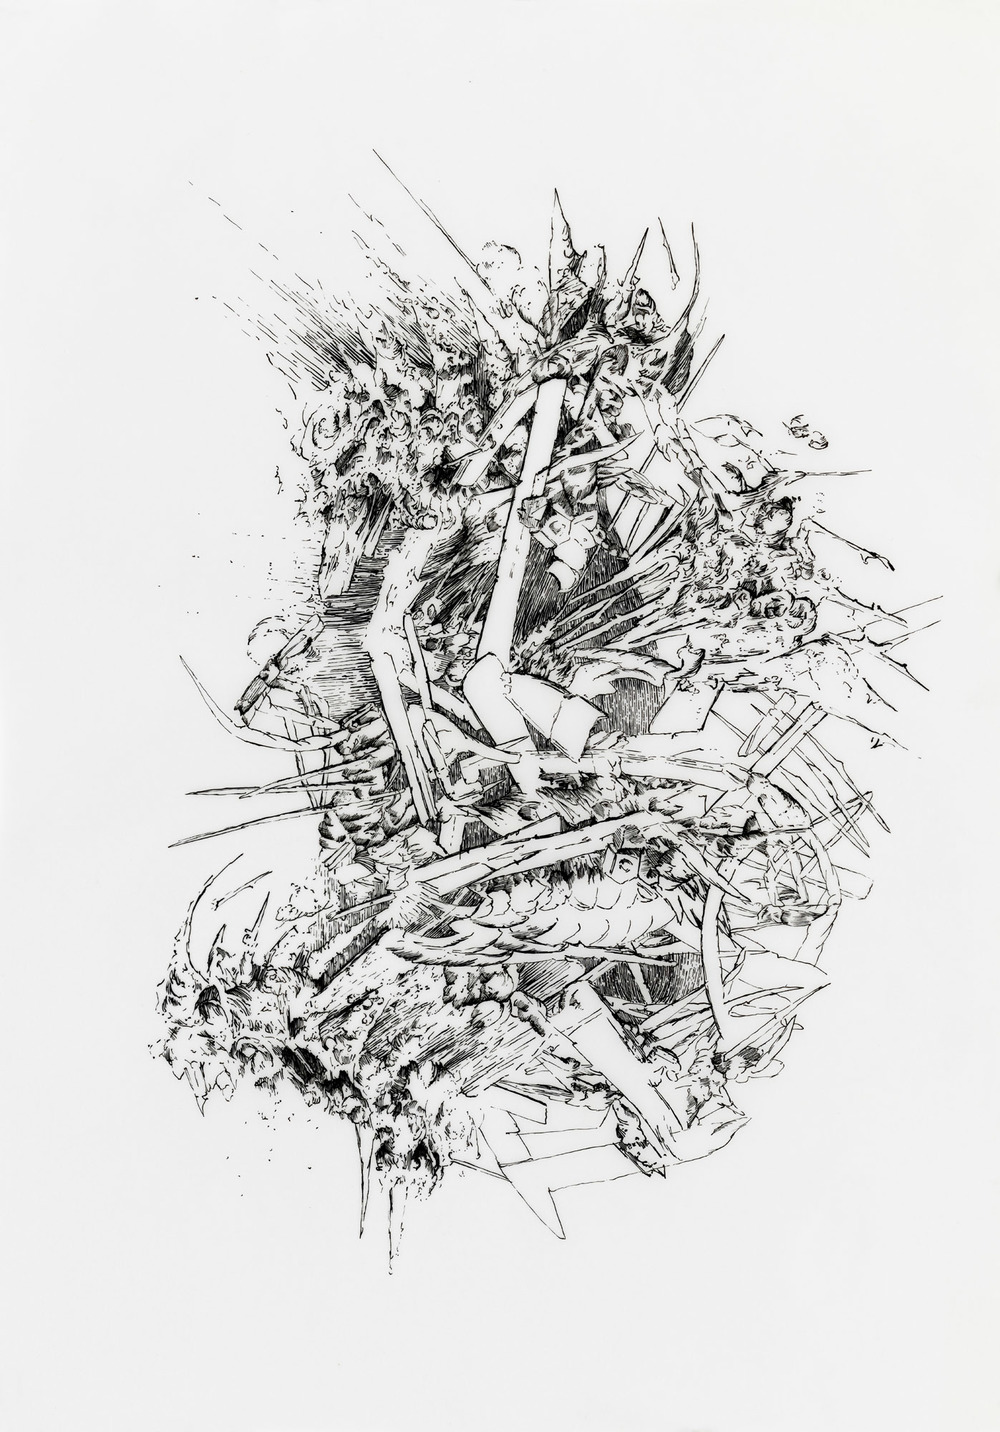 BK P106.001 | untitled | ink on transparent paper | 42x29,5cm | 2012 | privat collection berlin